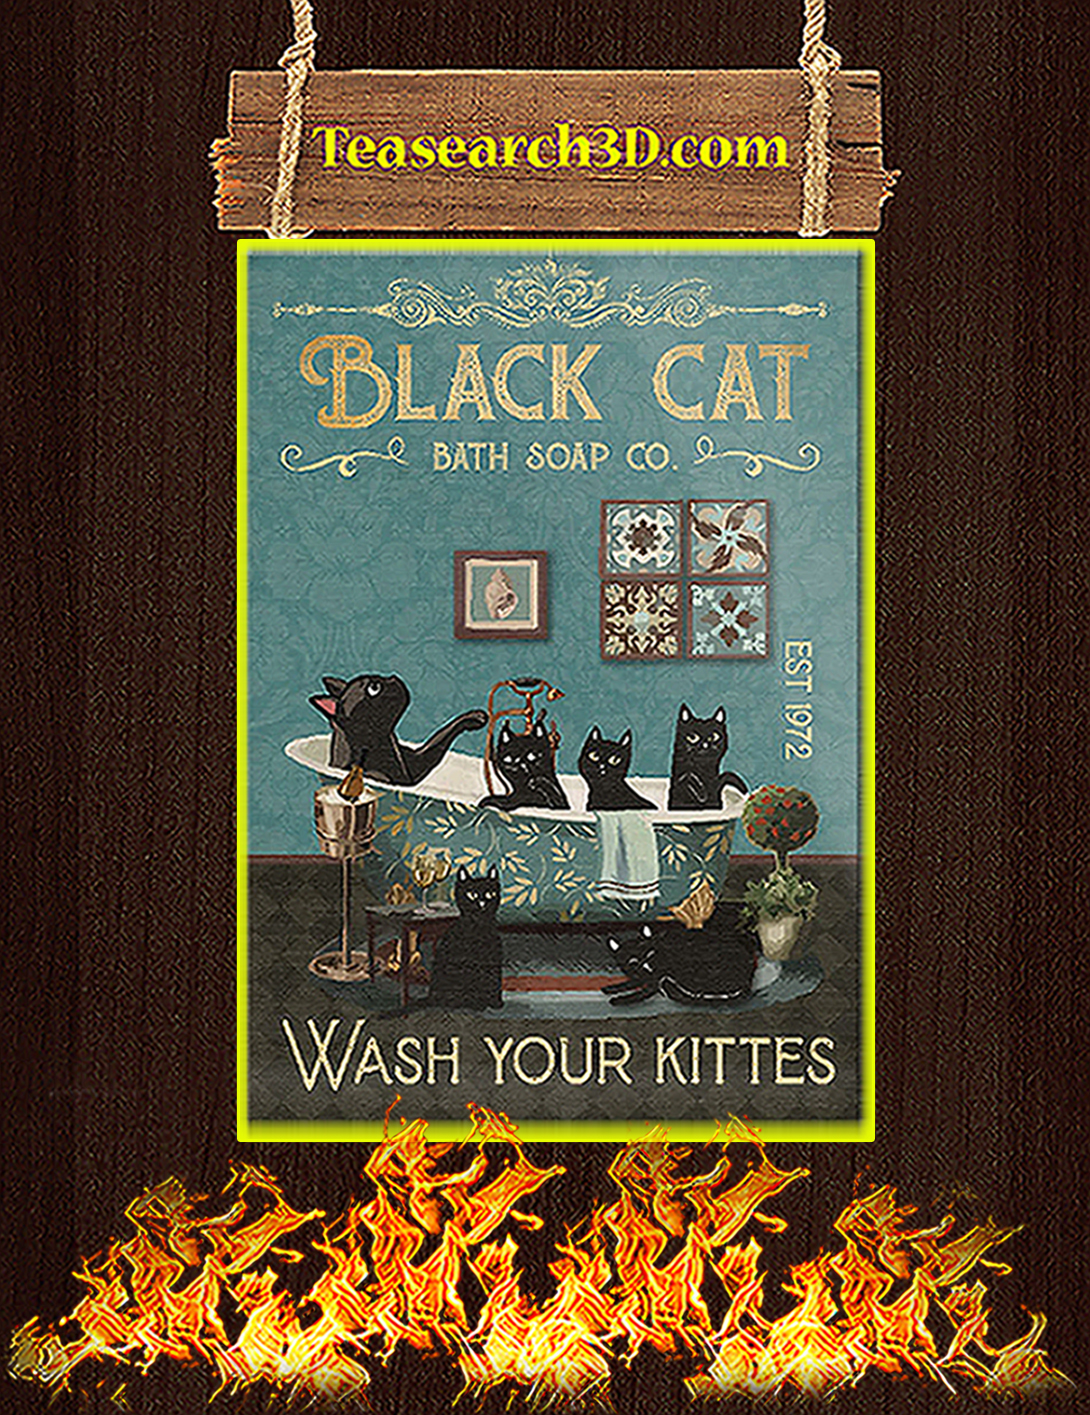 Black cat bath soap co wash your kittes poster A2